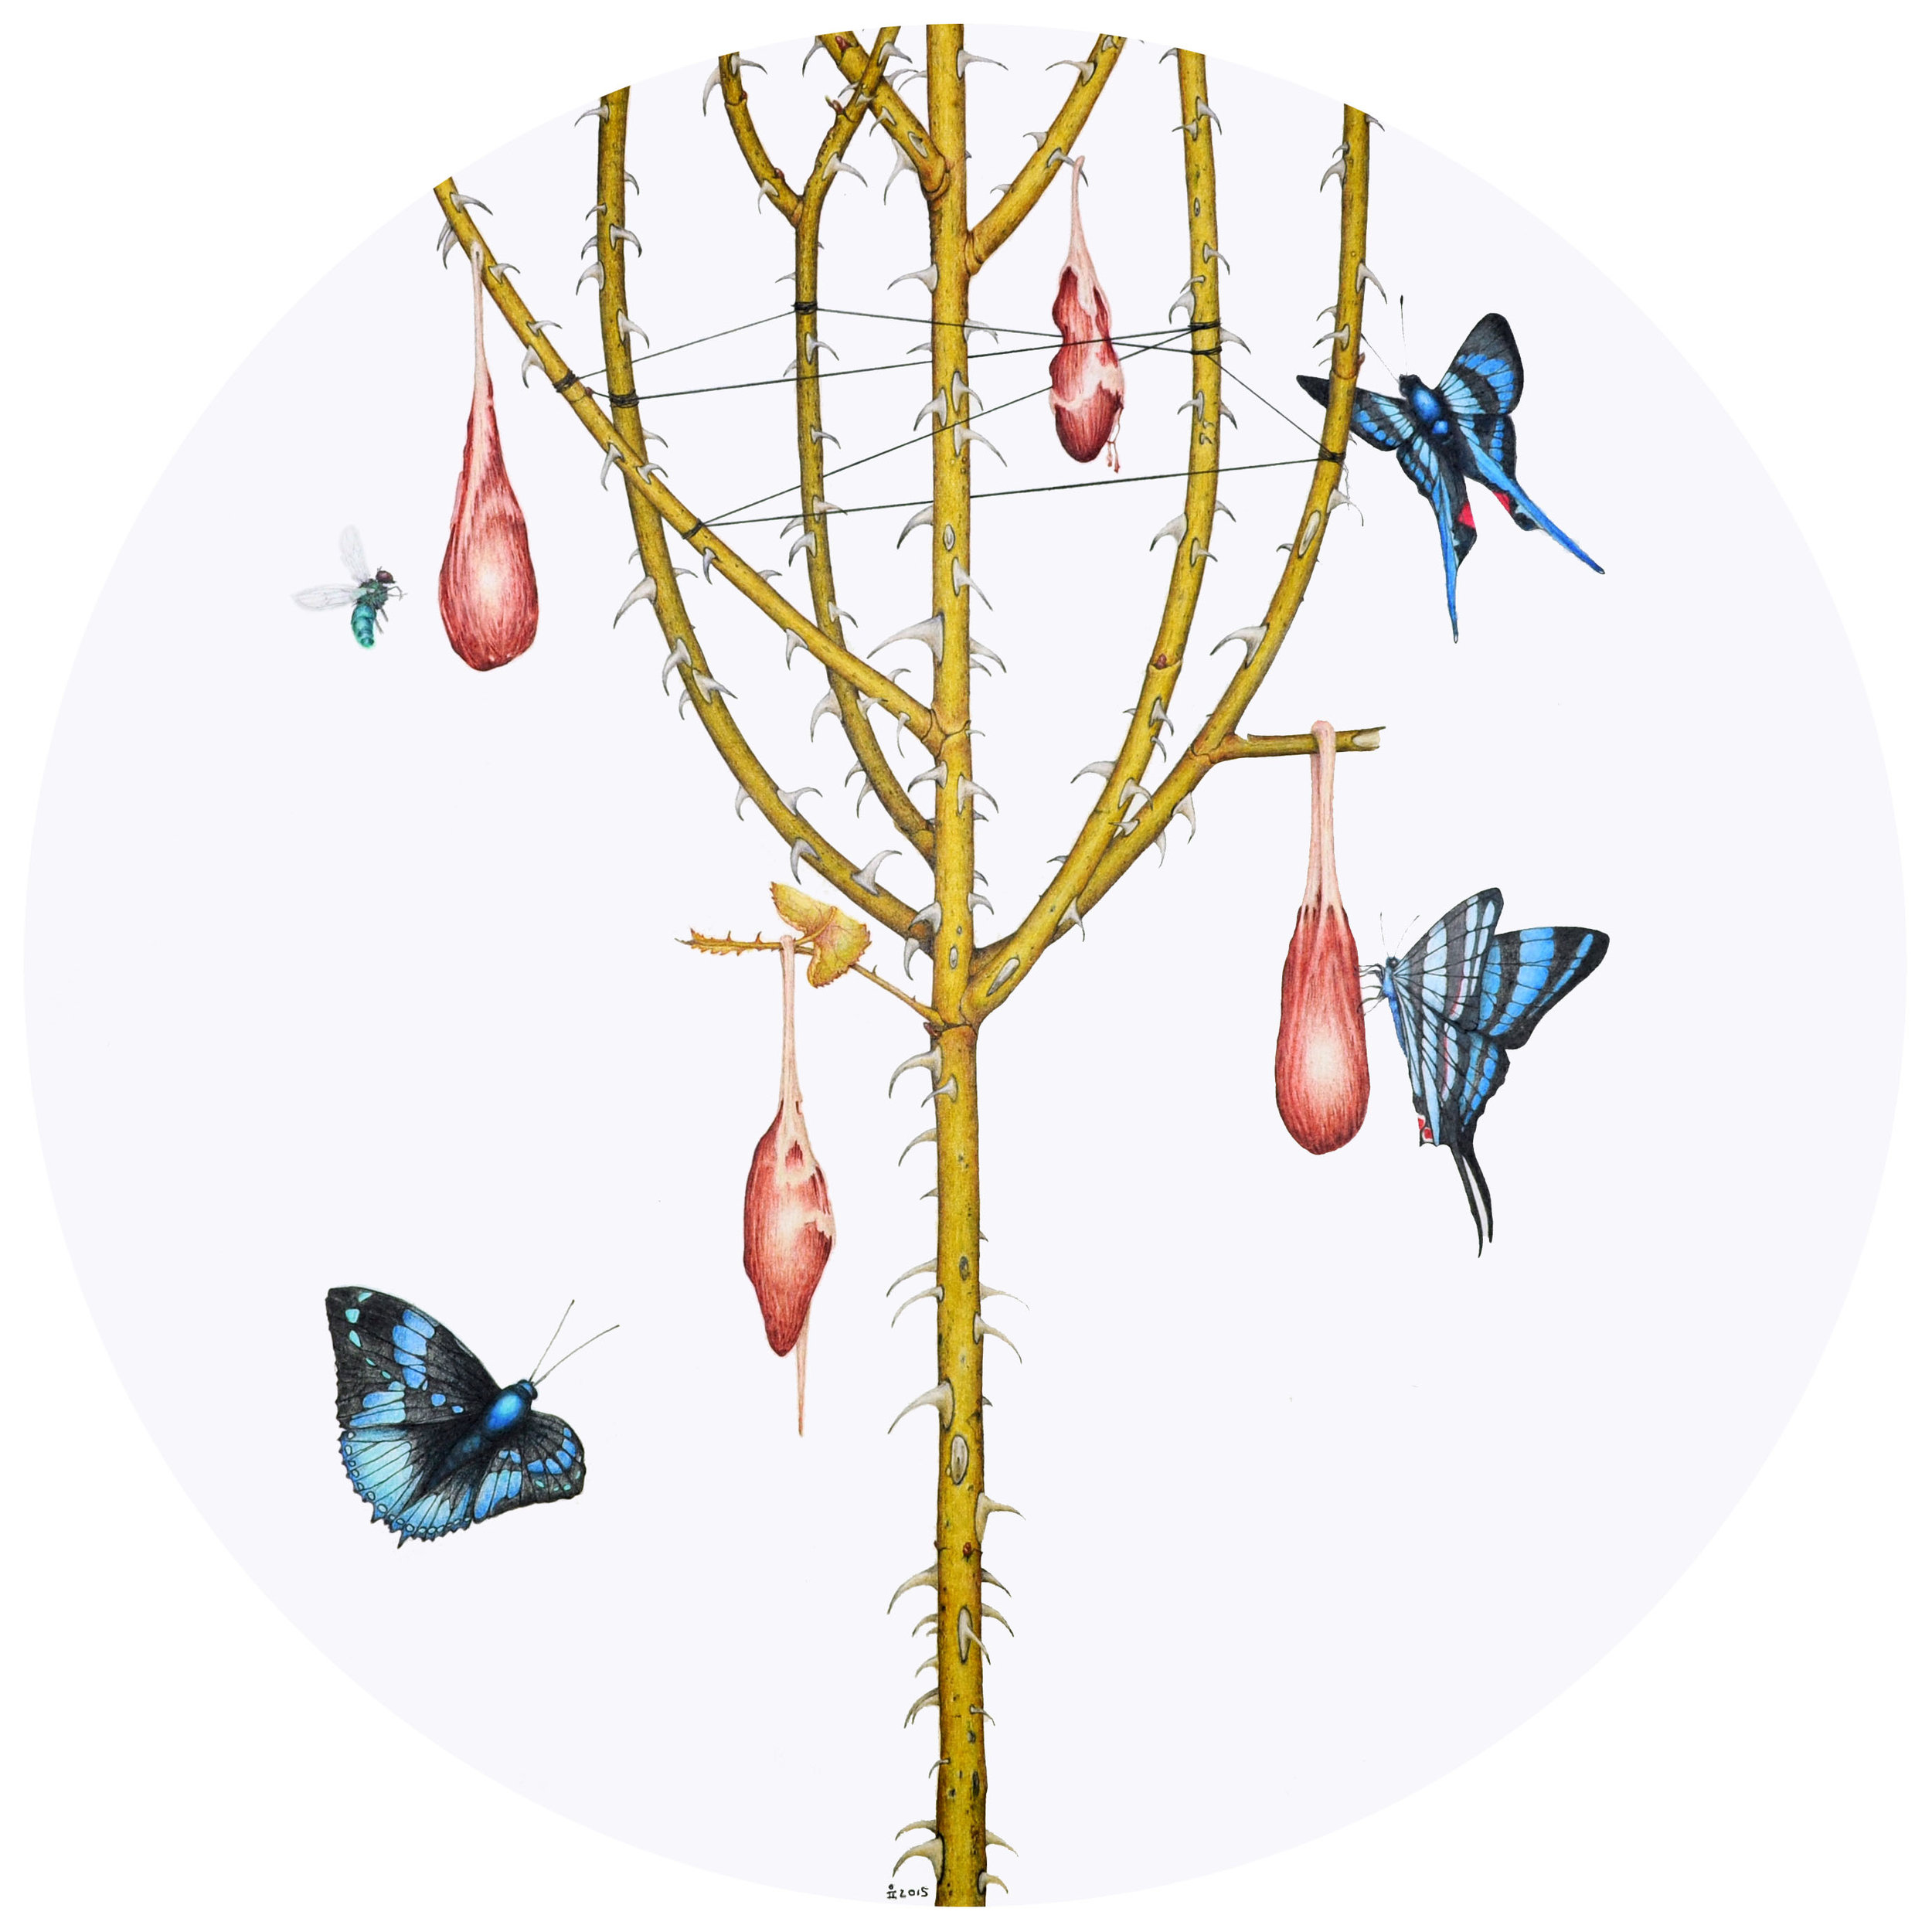 A colour pencil drawing of a spiny branching twig, with flesh objects hanging off it, and blue butterflies flying around it.